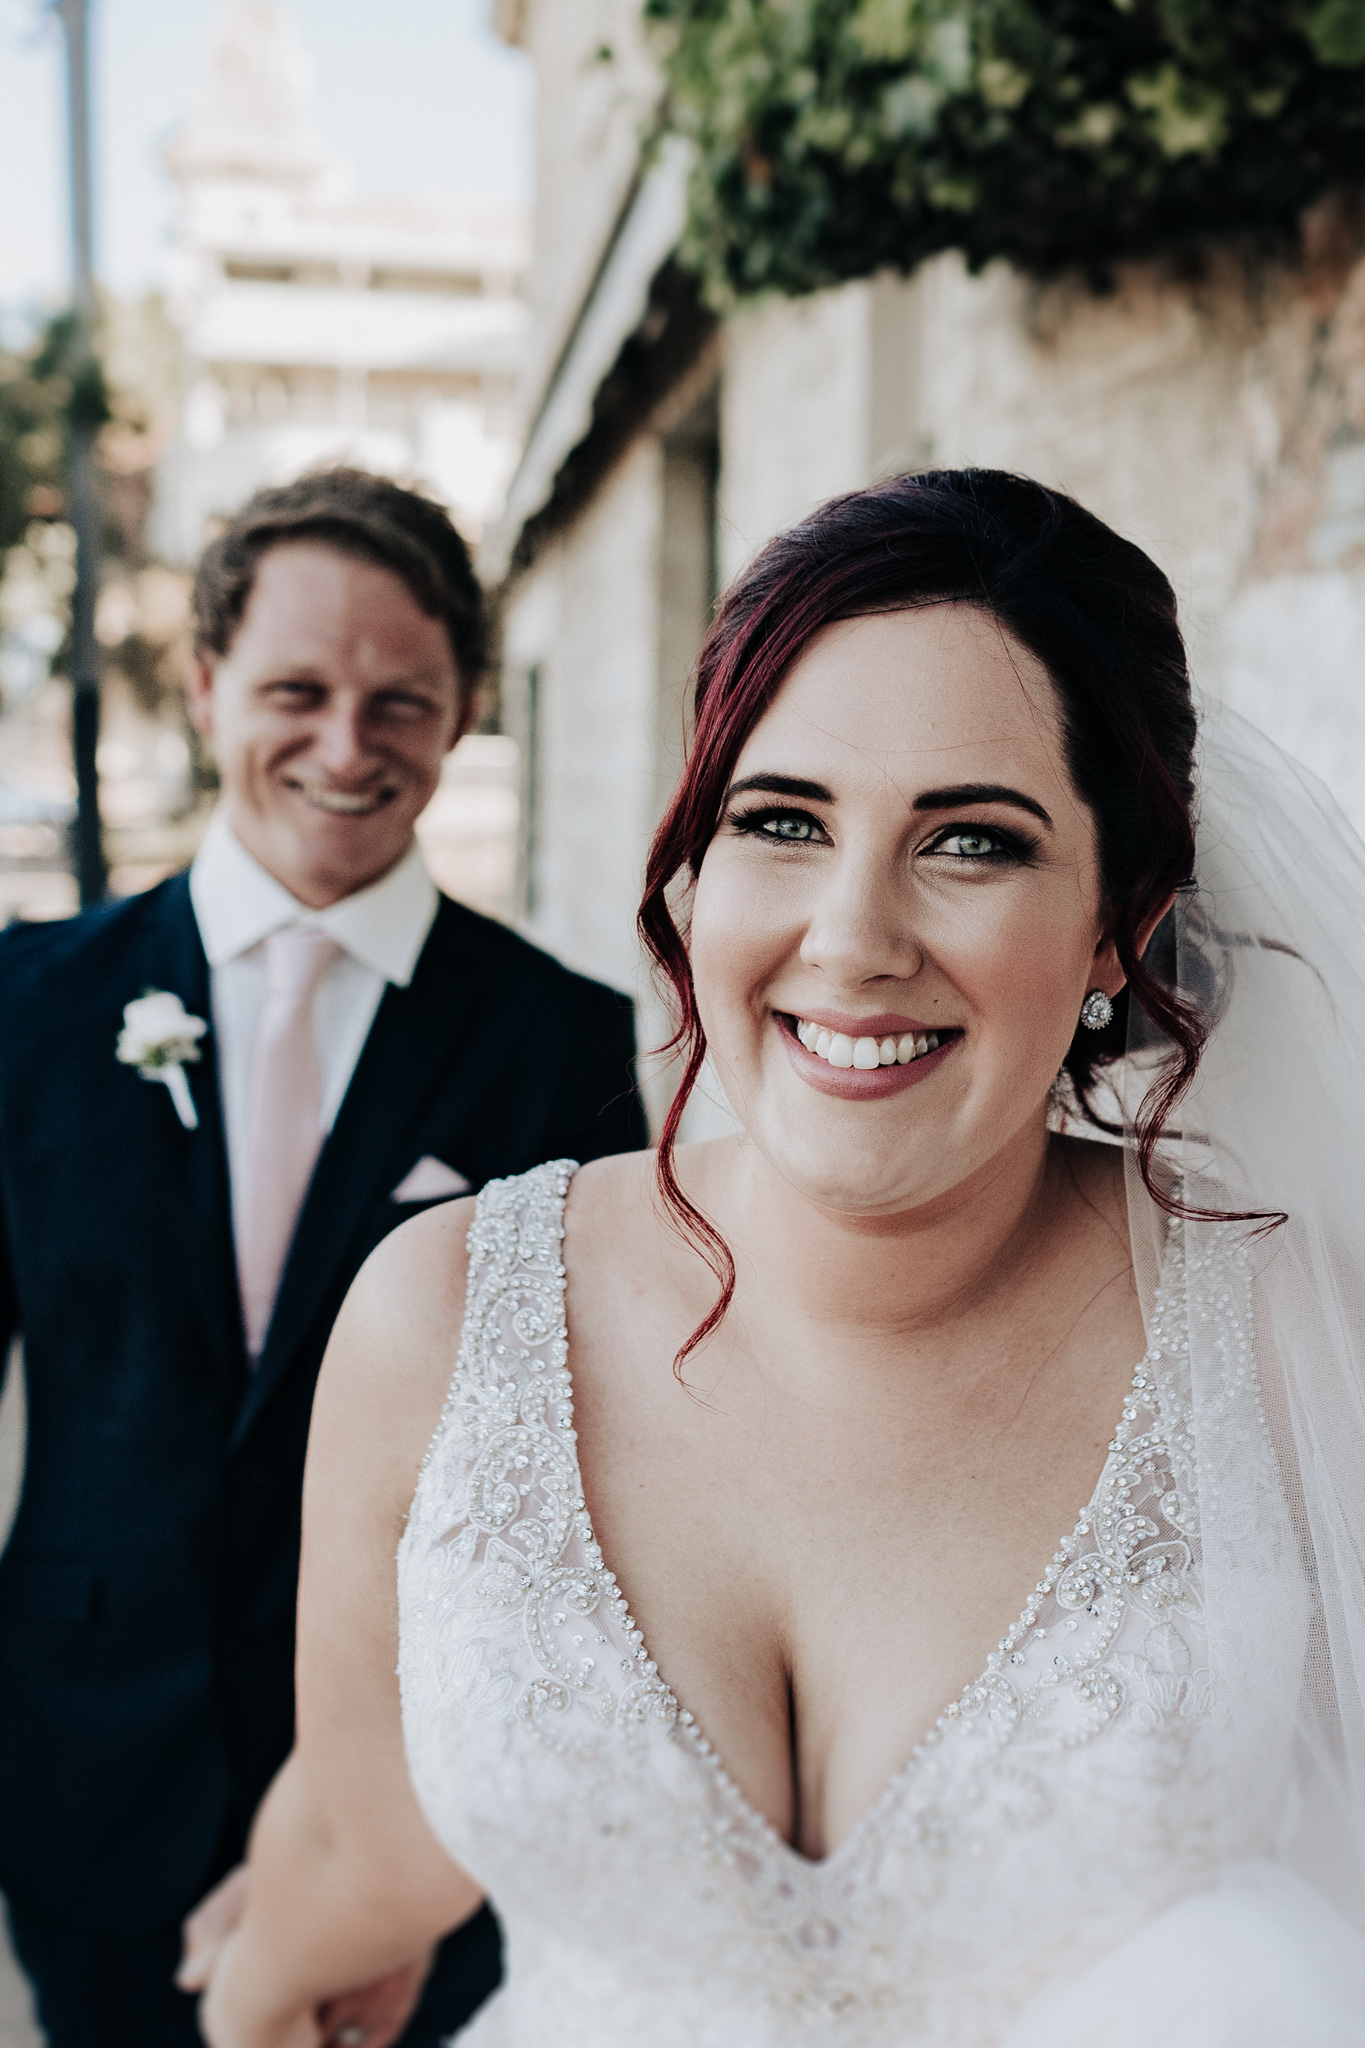 Beth+Jason - Jason and I met Mark when he photographed my cousins wedding in mt Baw Baw a few years ago and his work was incredible!Not only that, but they also recommended mark for his personality and the fact that he gets to know you as a couple and doesn't just treat you like another number!How right they were!He was wonderful from the beginning, nothing was too much trouble and he made us feel relaxed throughout the entire process! Obviously these are all important aspects when you hire a photographer for your special day but not only that, the work he produced of our wedding in Sorrento was absolutely stunning!Worth every single cent!Mark had an assistant on the day to help capture as many moments as possible and he was also amazing!We can't Thankyou enough mark for your hard work and expertise. You are a truely gifted individual and we could not have asked for anything more!Many thanksBeth and Jason Docherty